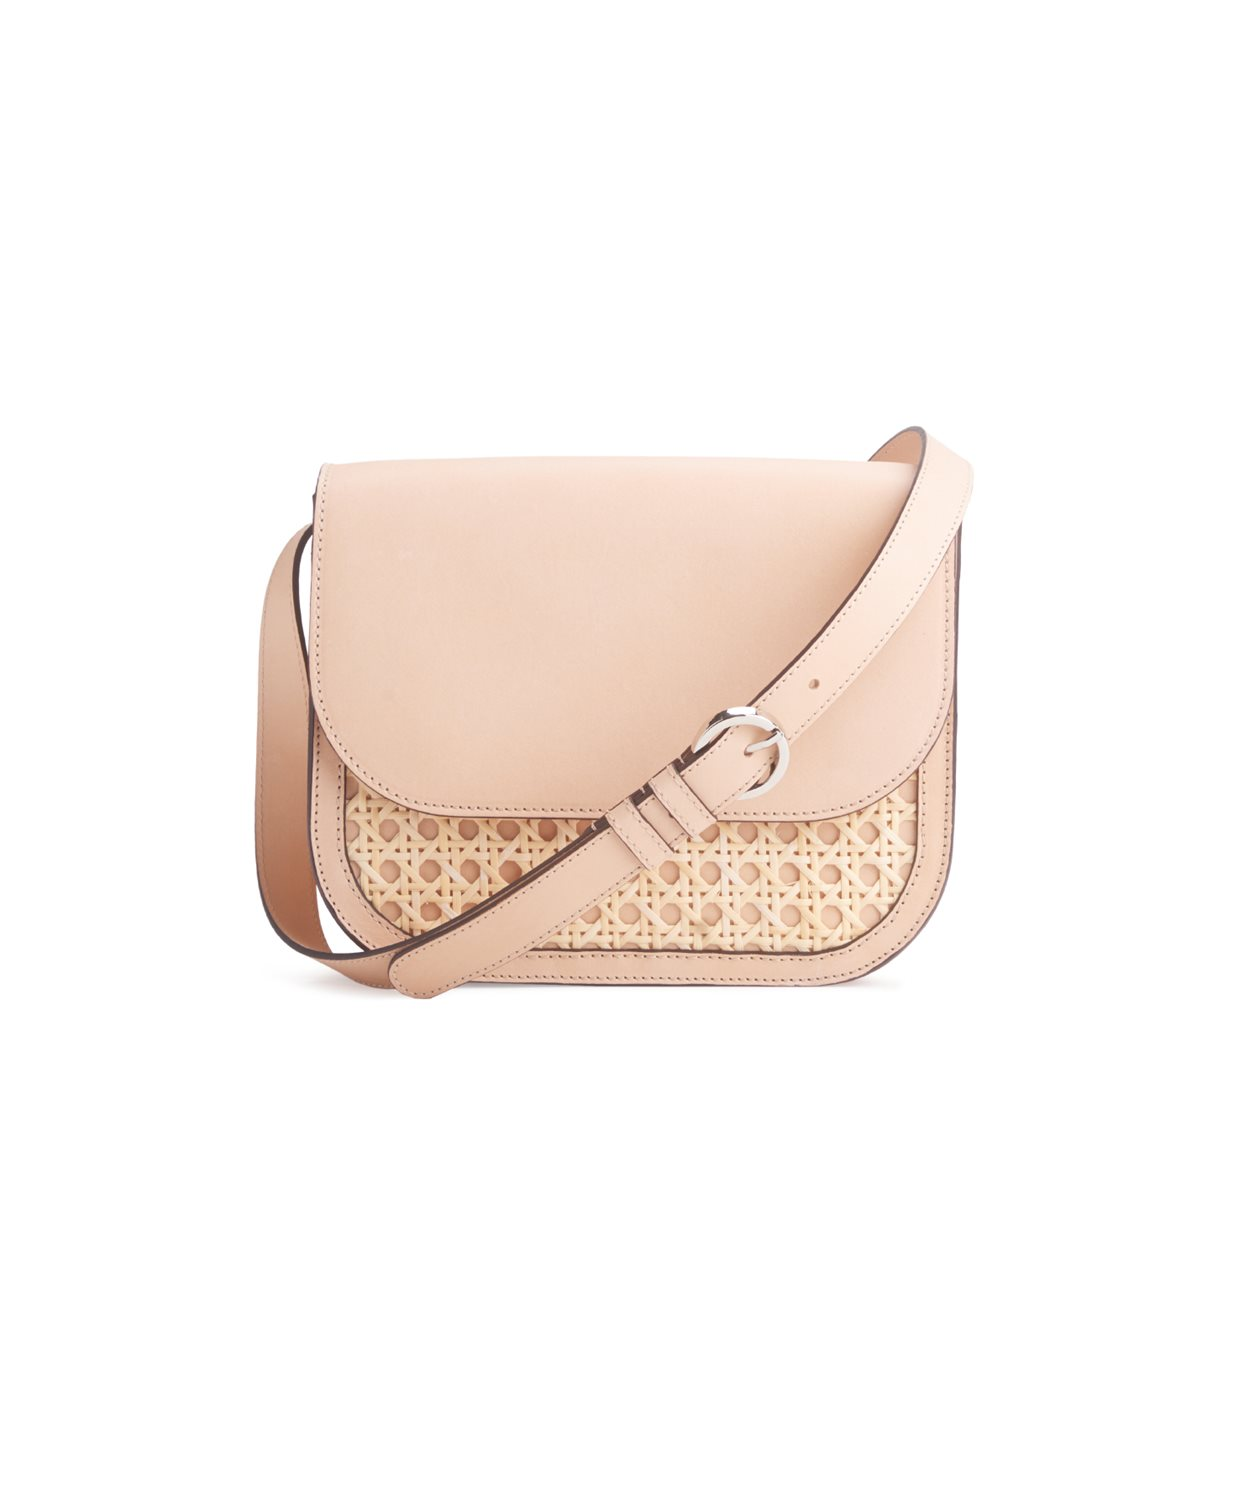 Palmgrens - EO Shoulder Bag Ofärgad - Genuine handcrafted leather ... 72a3f6c71b440